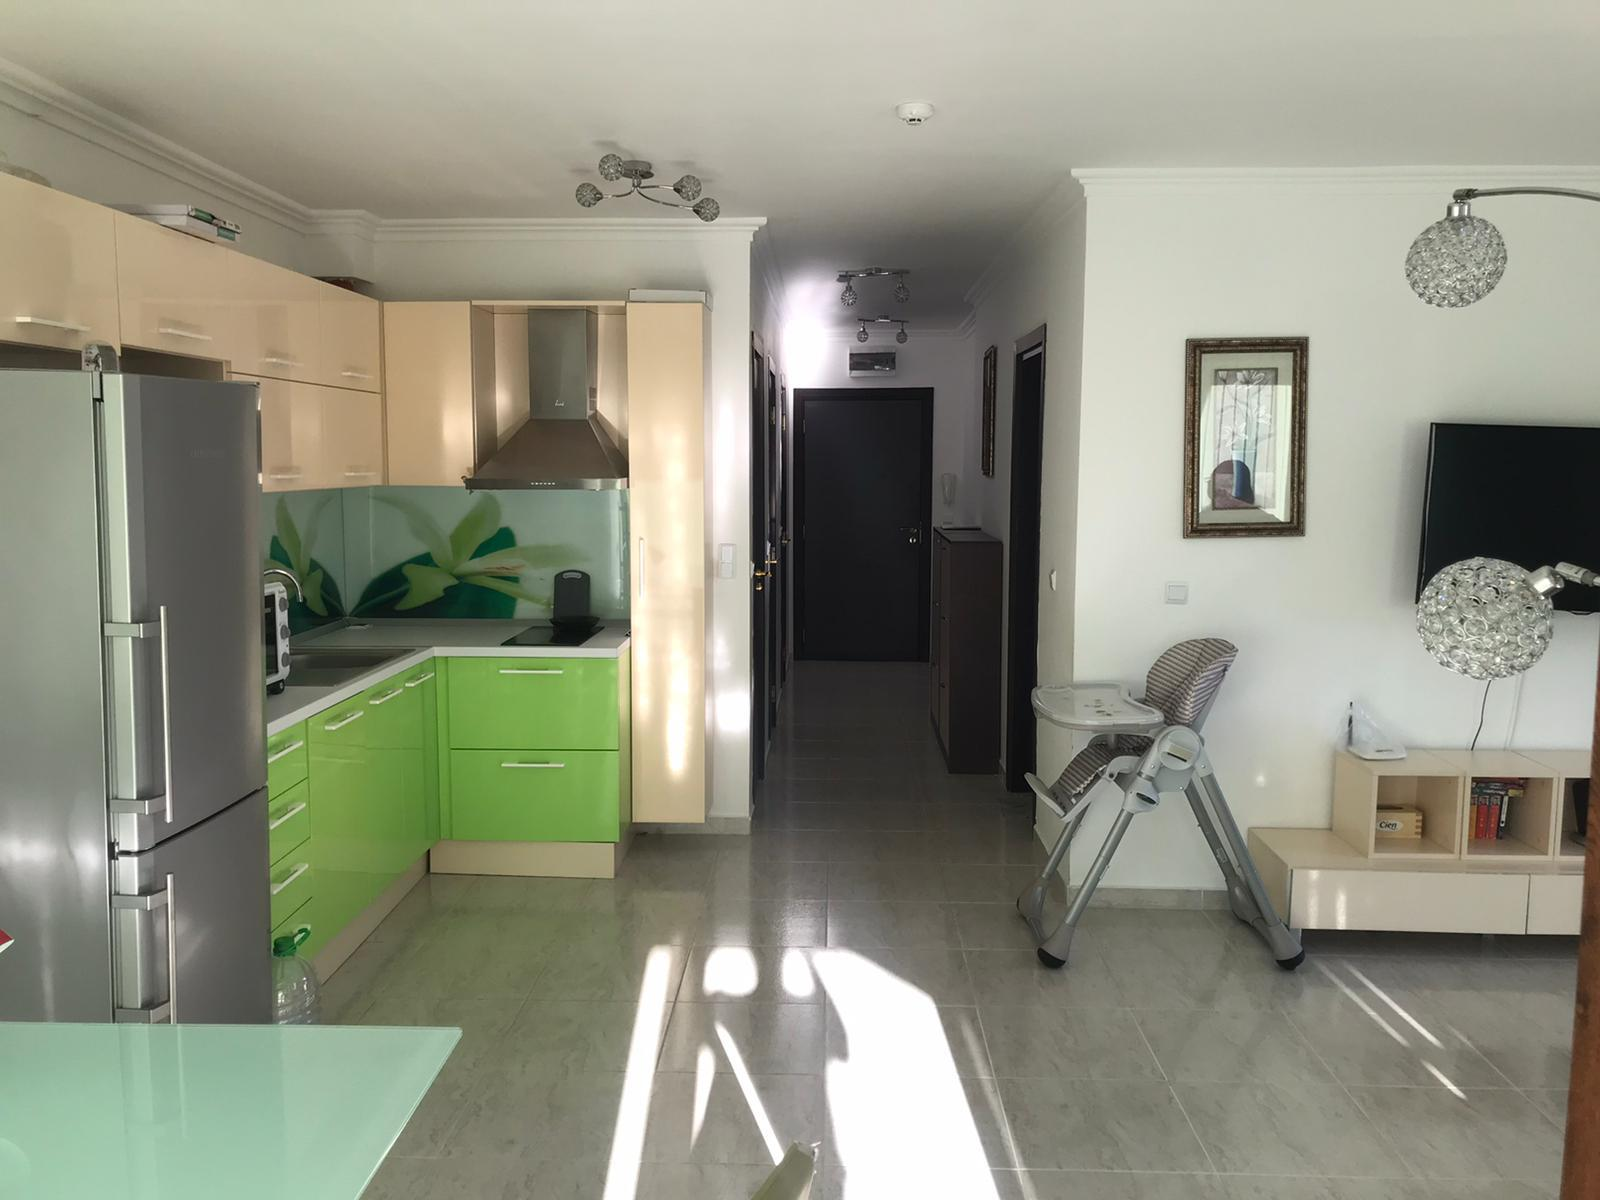 For Sale: Spacious two-bedroom apartment 200 meters from the beach